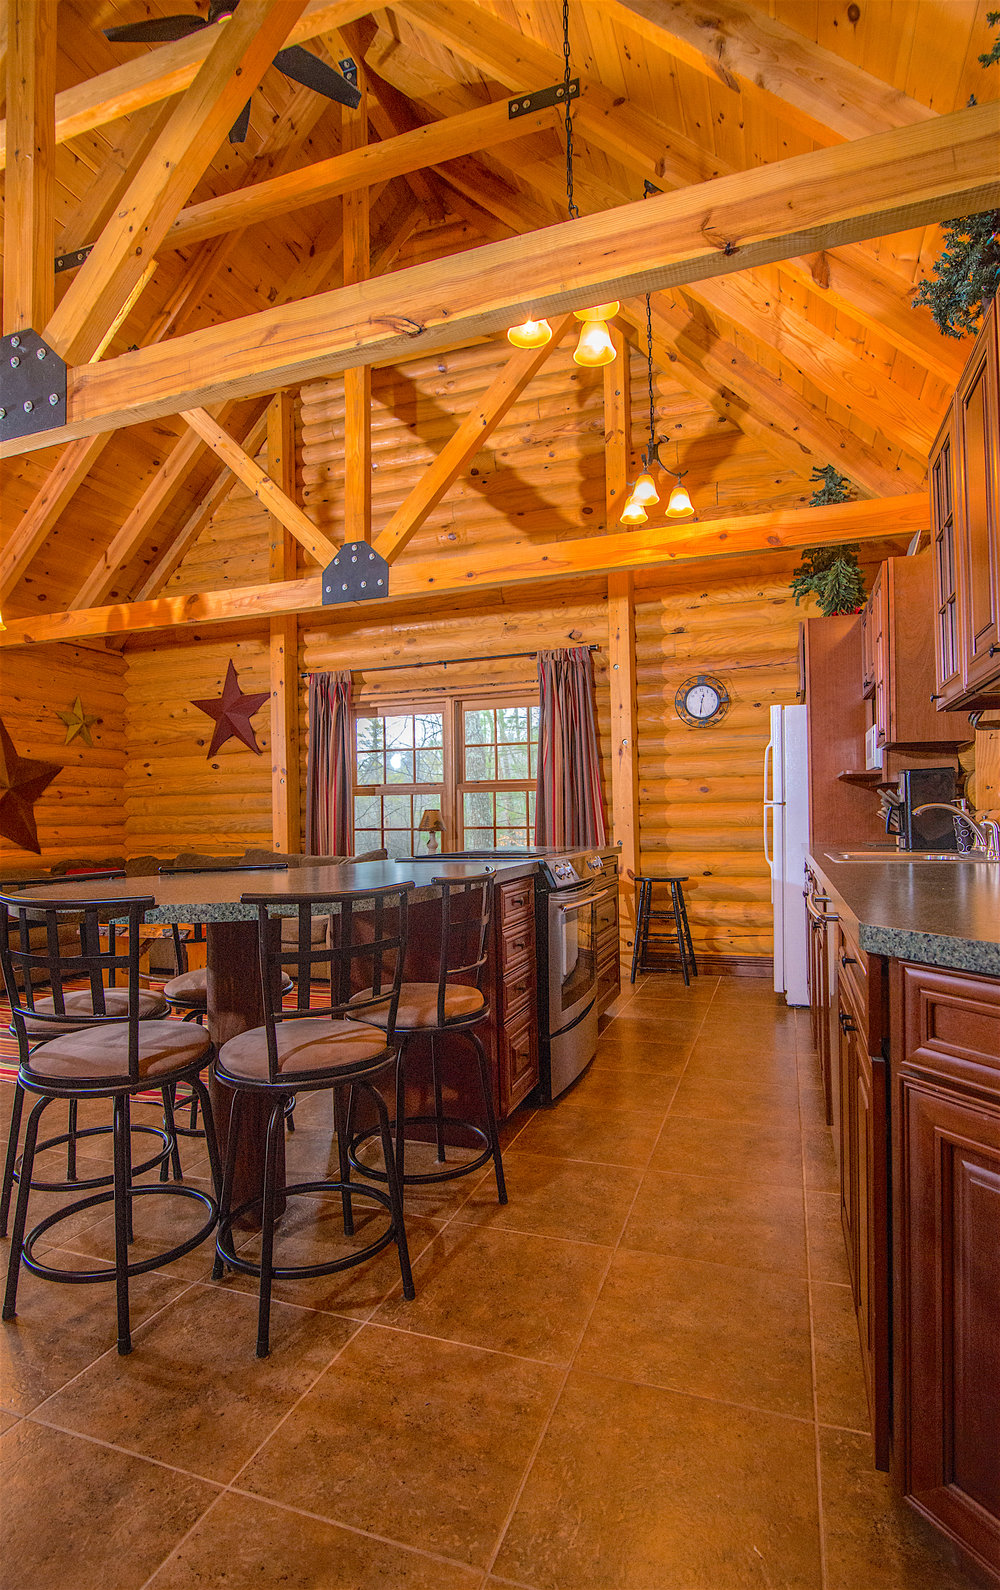 Great Room Kitchen Pentwater Michigan Cabin.jpg